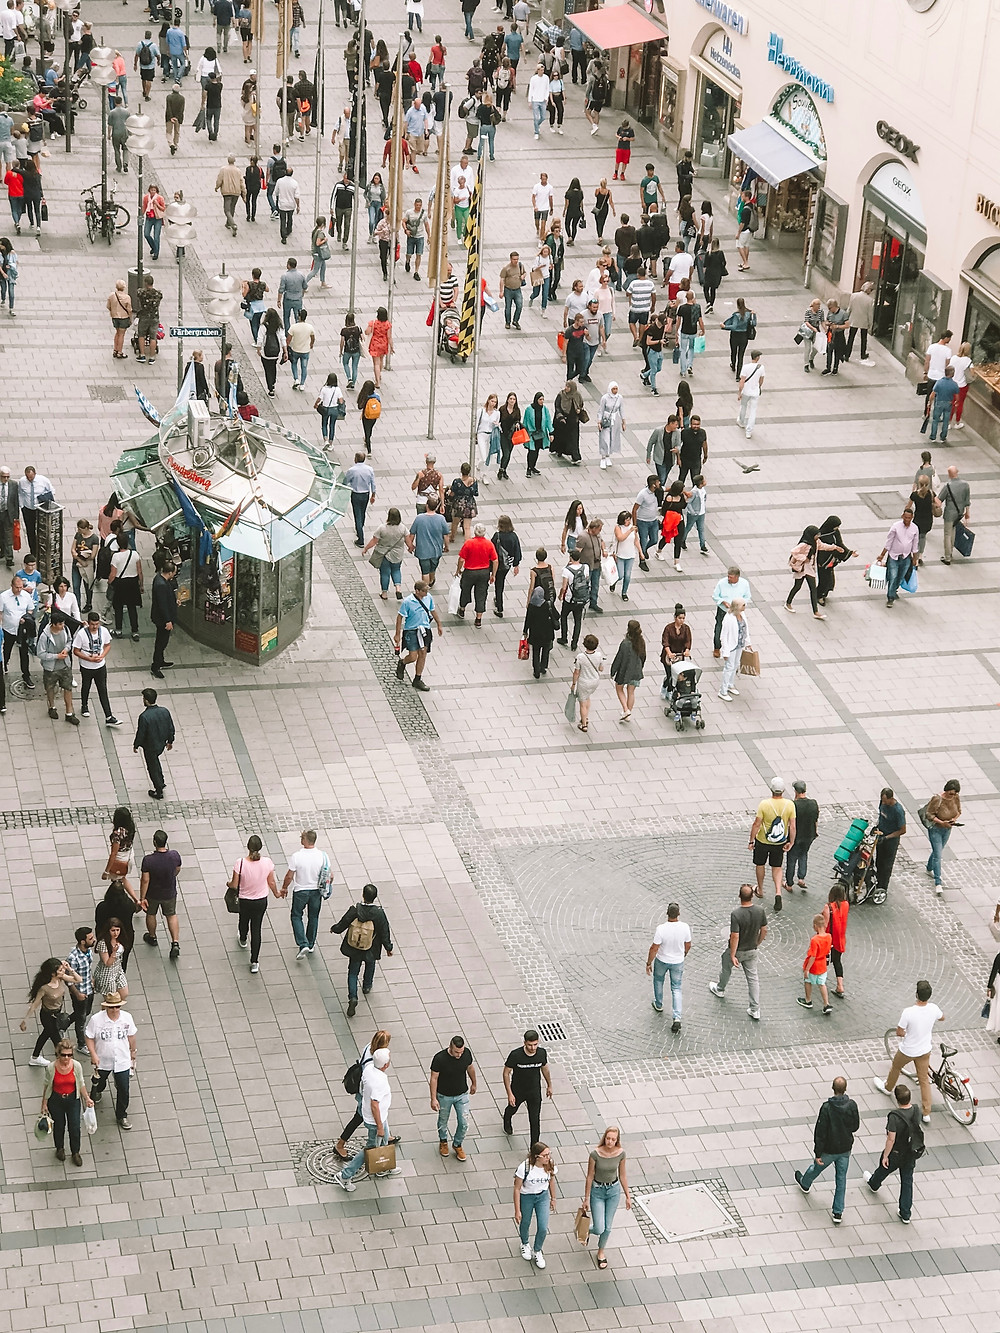 The picture shows a pedestrian zone from above with people walking